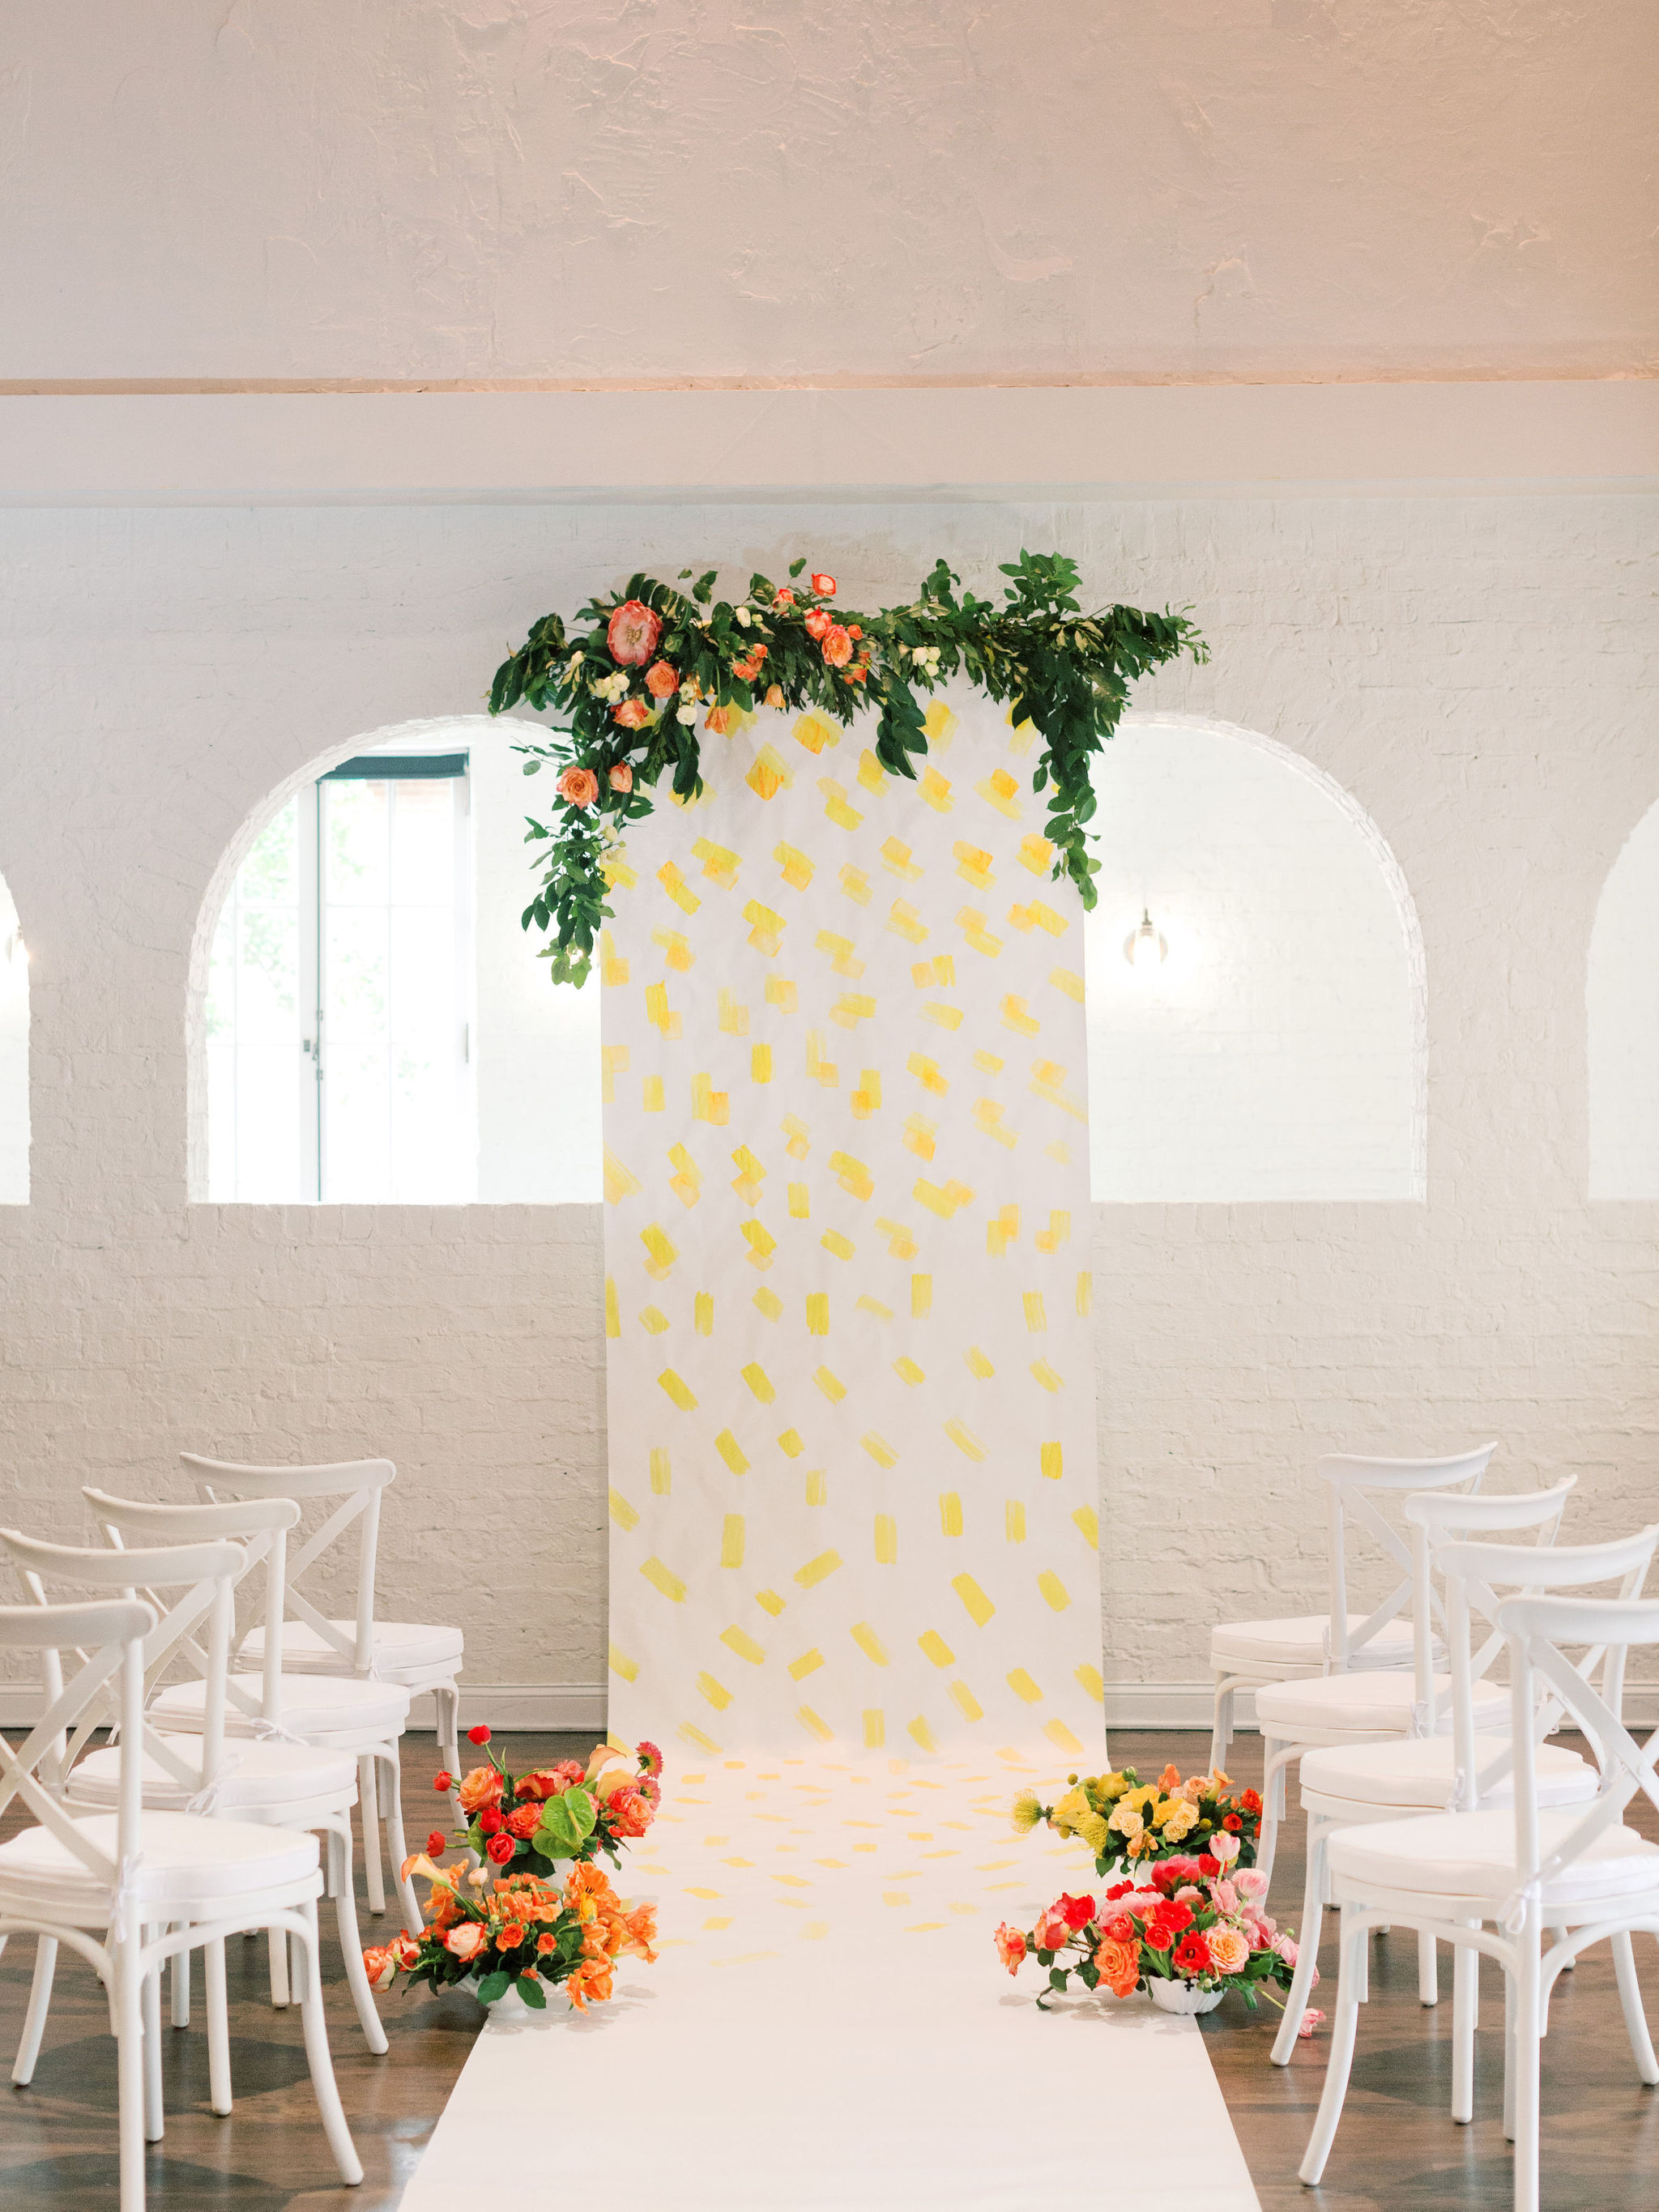 Painted Floral Ceremony Backdrop